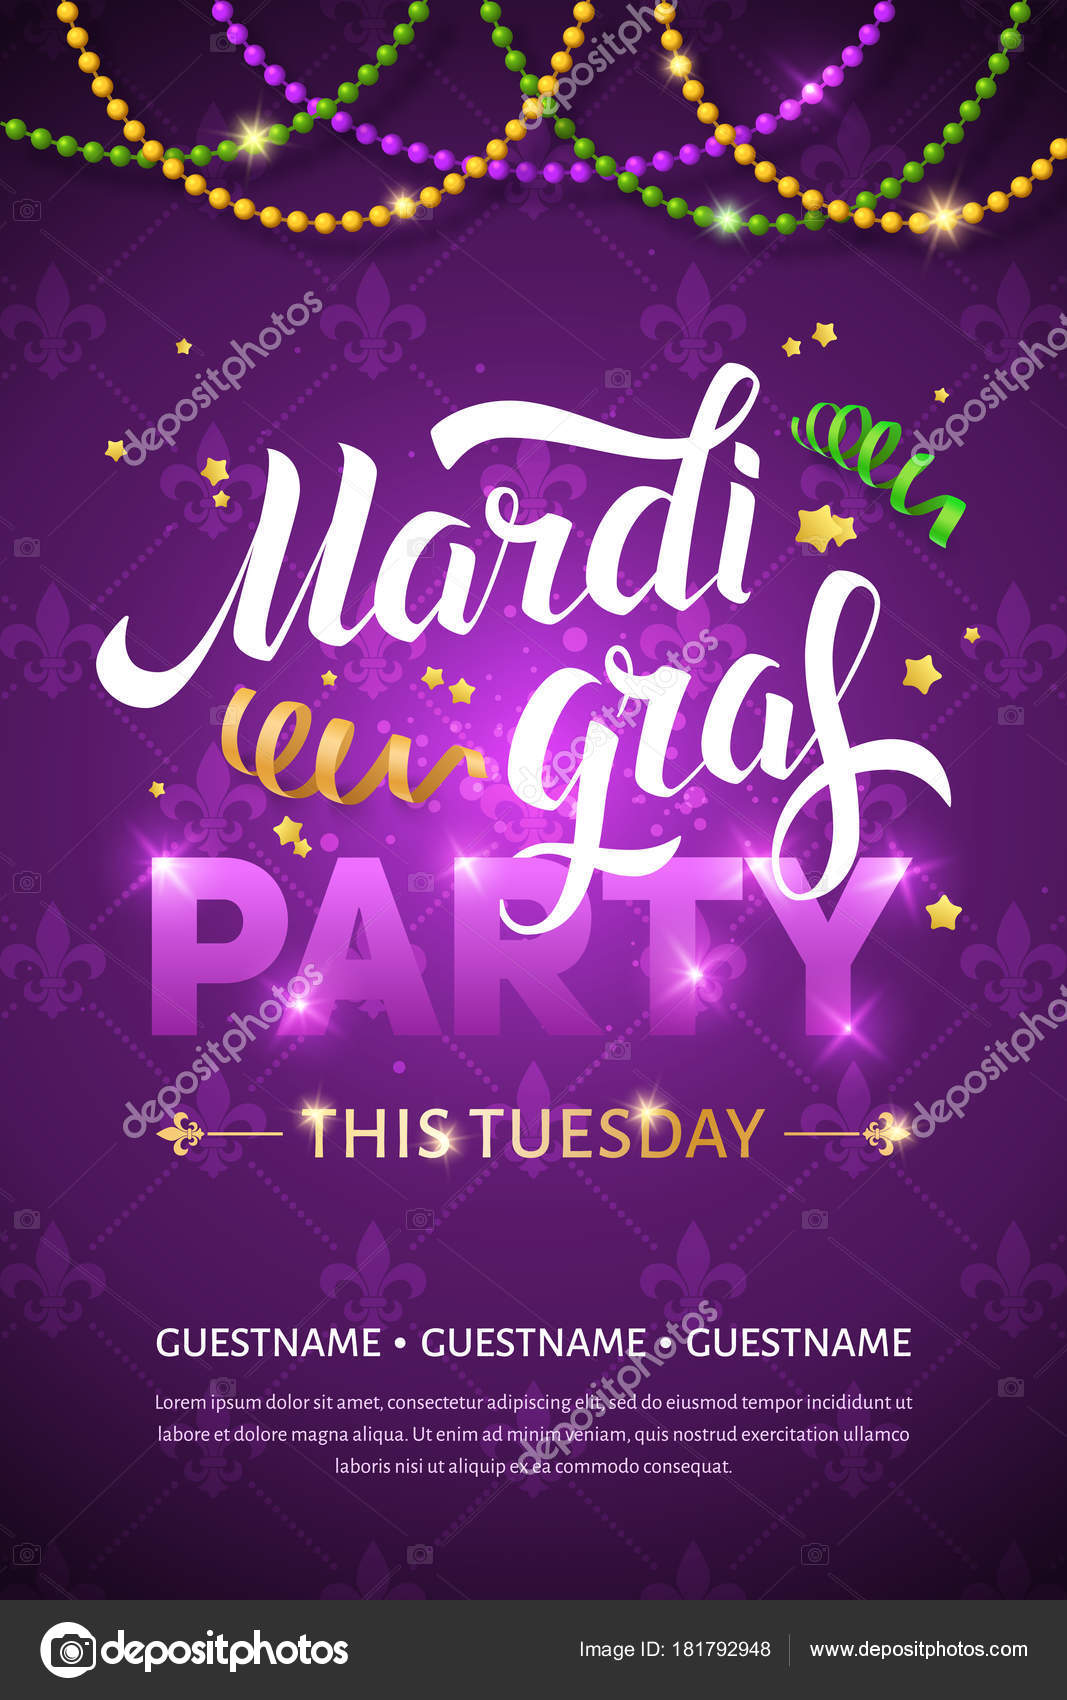 Mardi gras brochure vector logo hand drawn lettering ribbons fat mardi gras brochure vector logo with hand drawn lettering ribbons and fat tuesday symbols greeting card with shining beads on traditional colors m4hsunfo Images